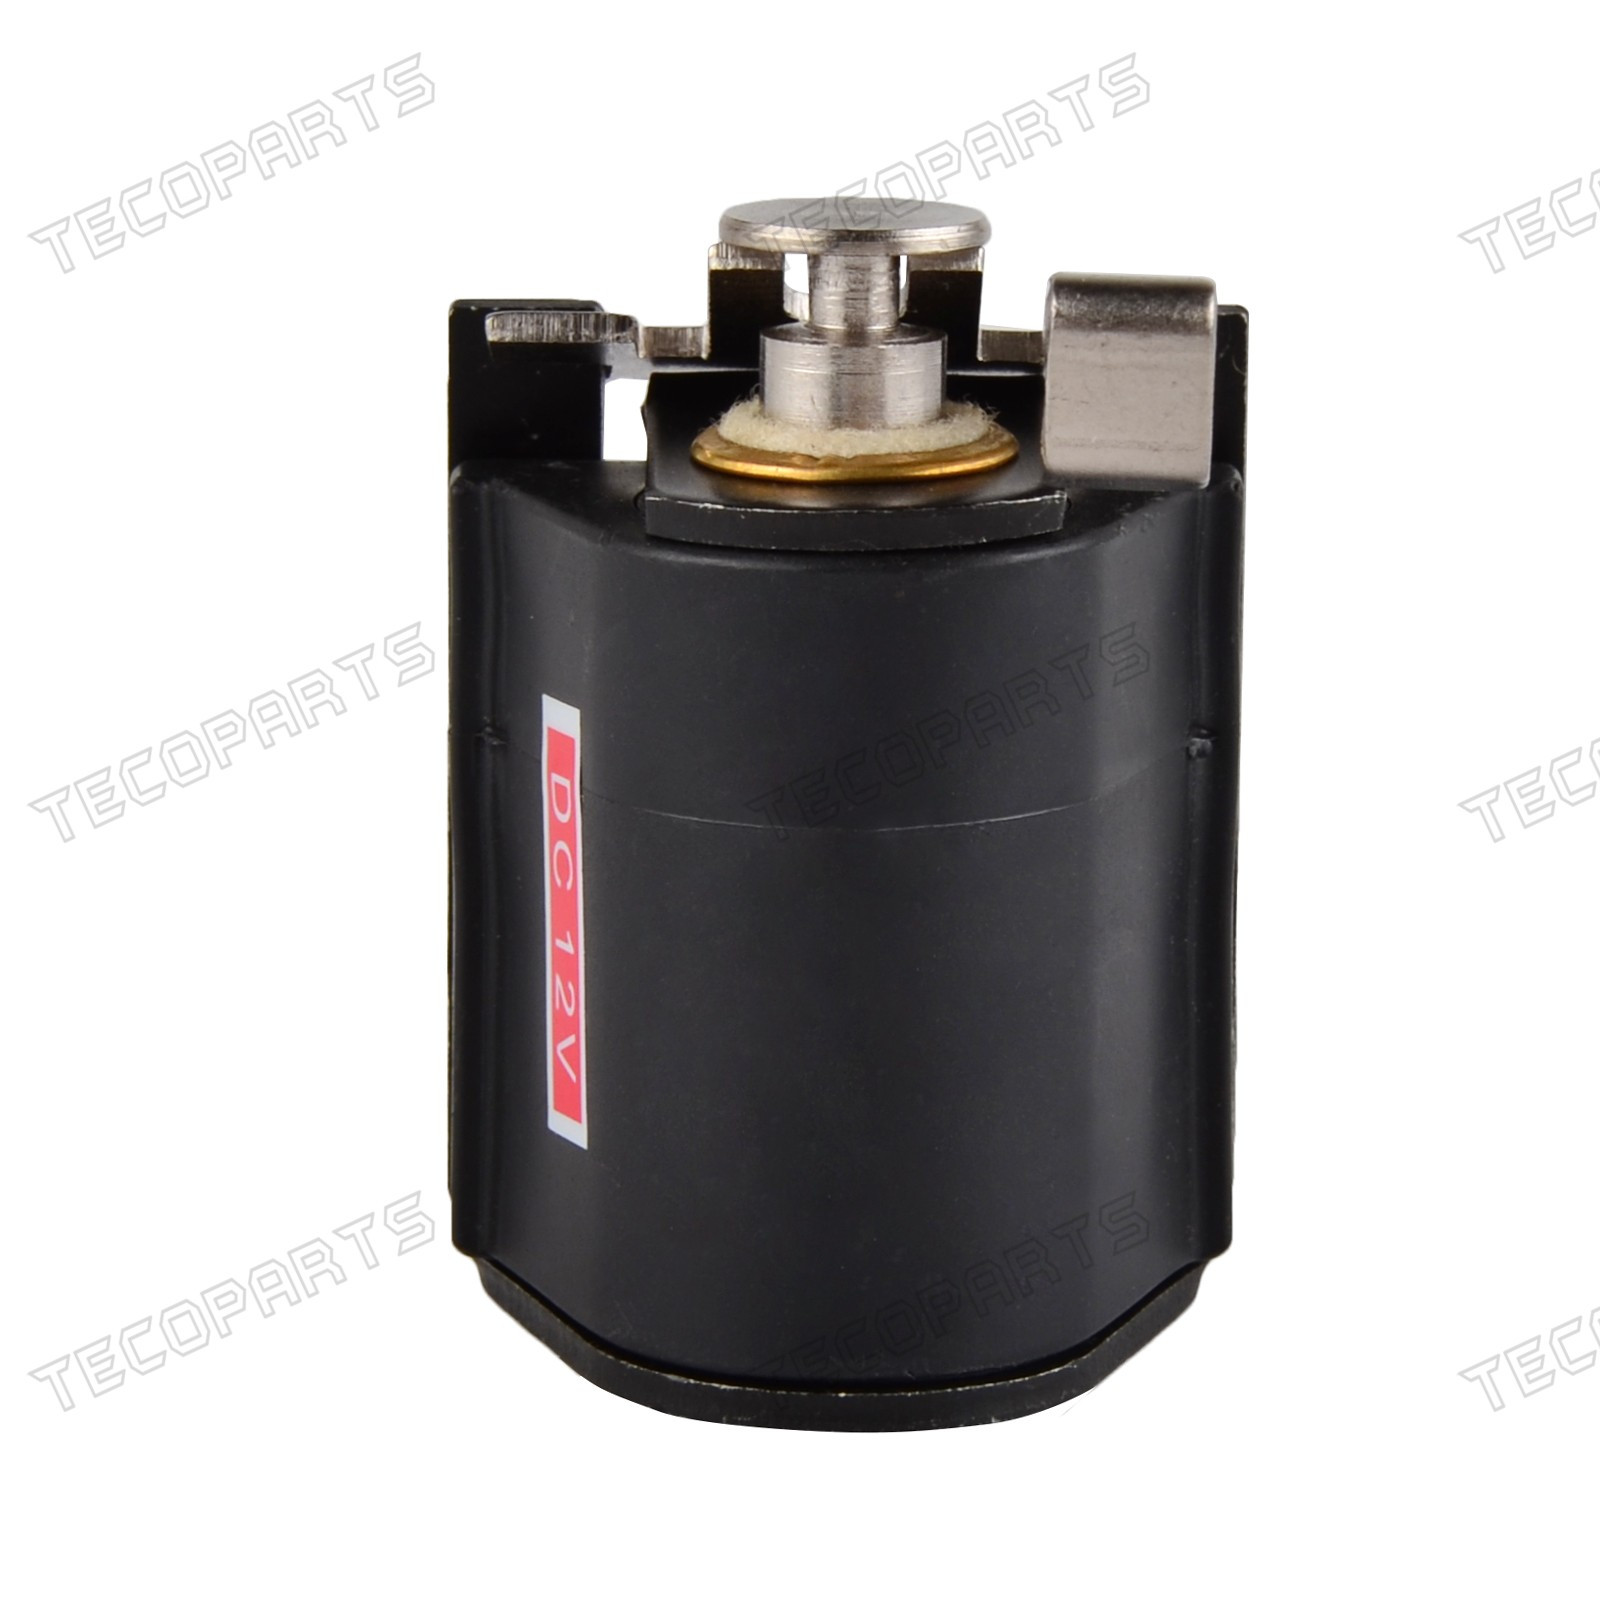 Injection Pump Shut off Solenoid For Stanadyne Roosamaster 4.3 5.7 6.2 6.5